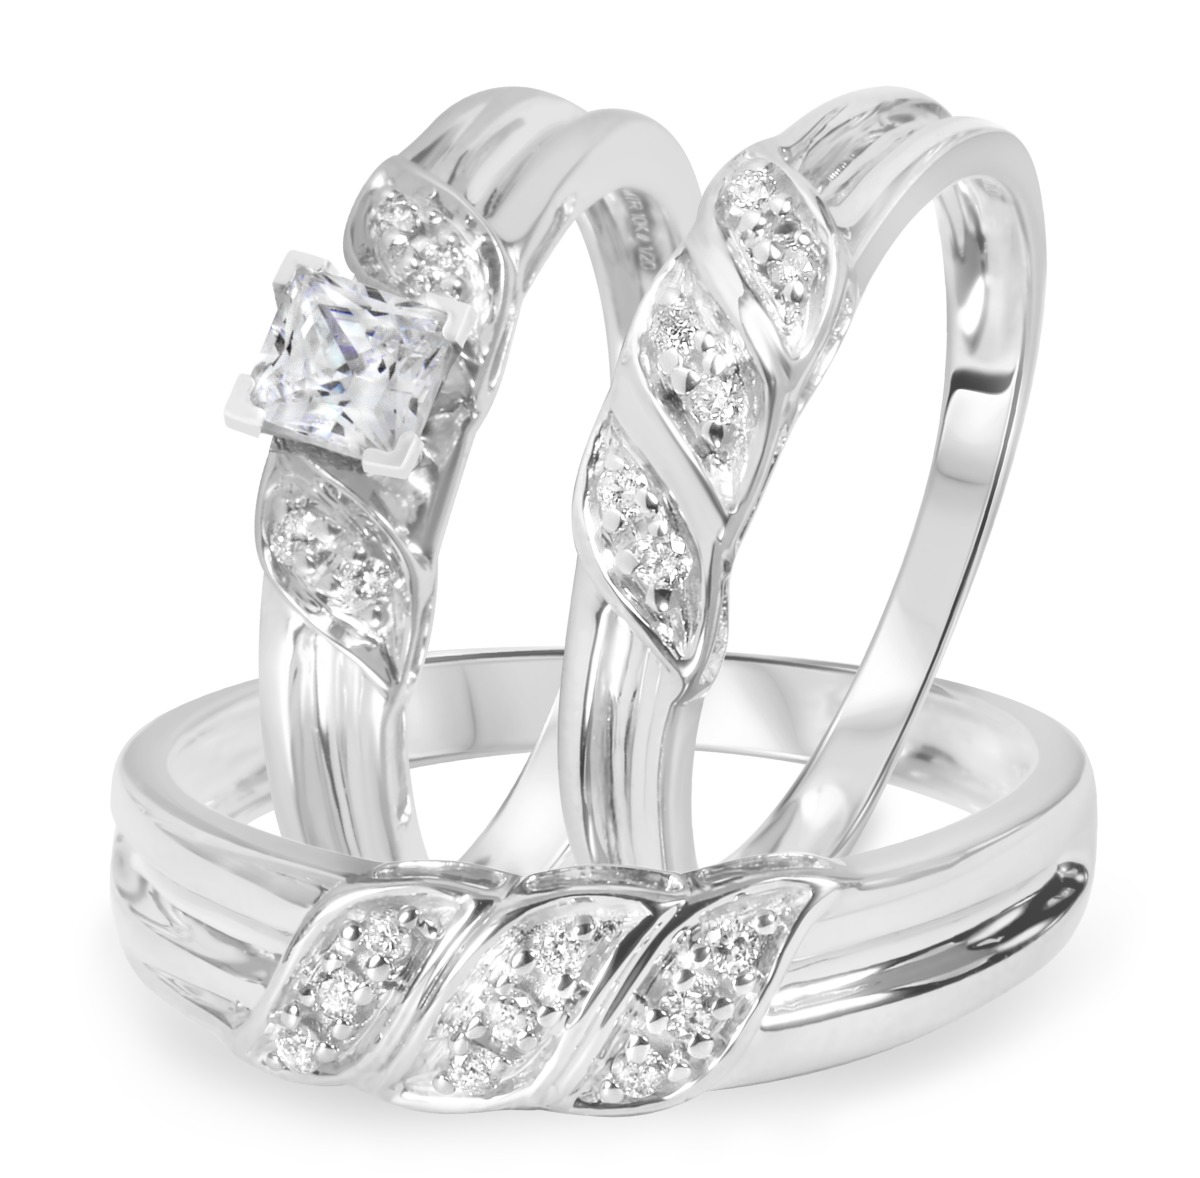 1/2 CT. T.W. Diamond Ladies Engagement Ring, Wedding Band, Men's Wedding Band Matching Set 10K White Gold